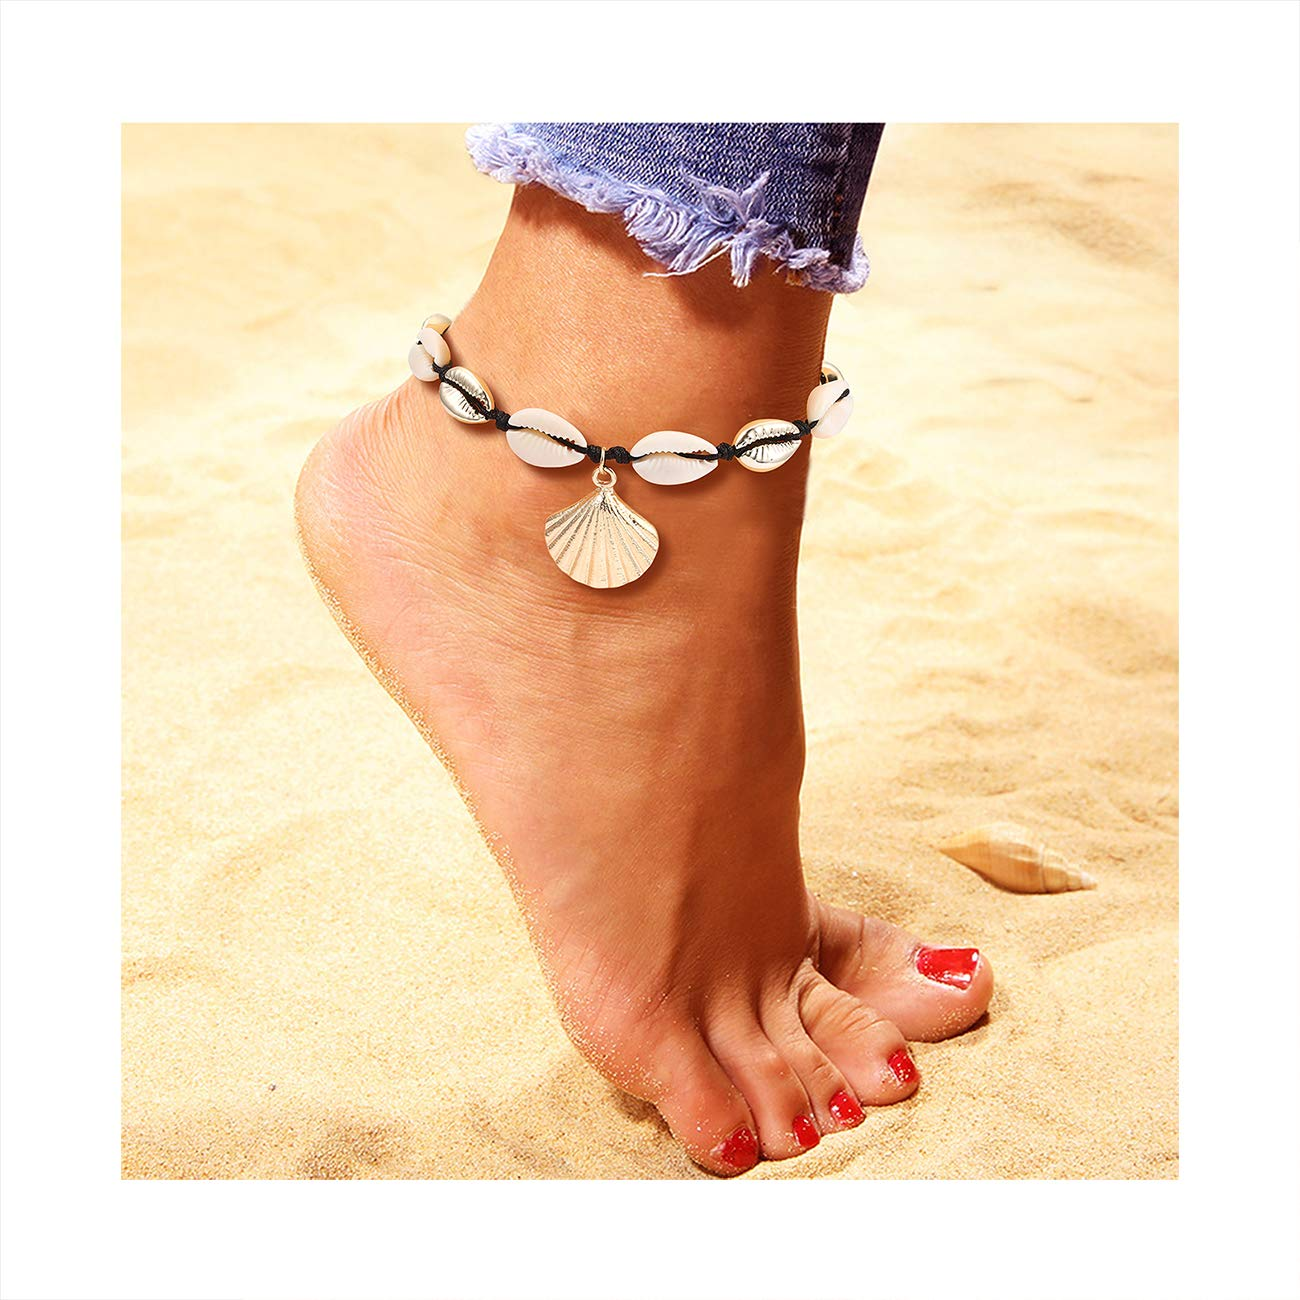 05765c9e61413 YINL Shell Anklets – Natural Cowrie Beads Seashell Charm Surfer Anklet  Bracelet Handmade Boho Beach Foot Hawaii Jewelry for Women Girls